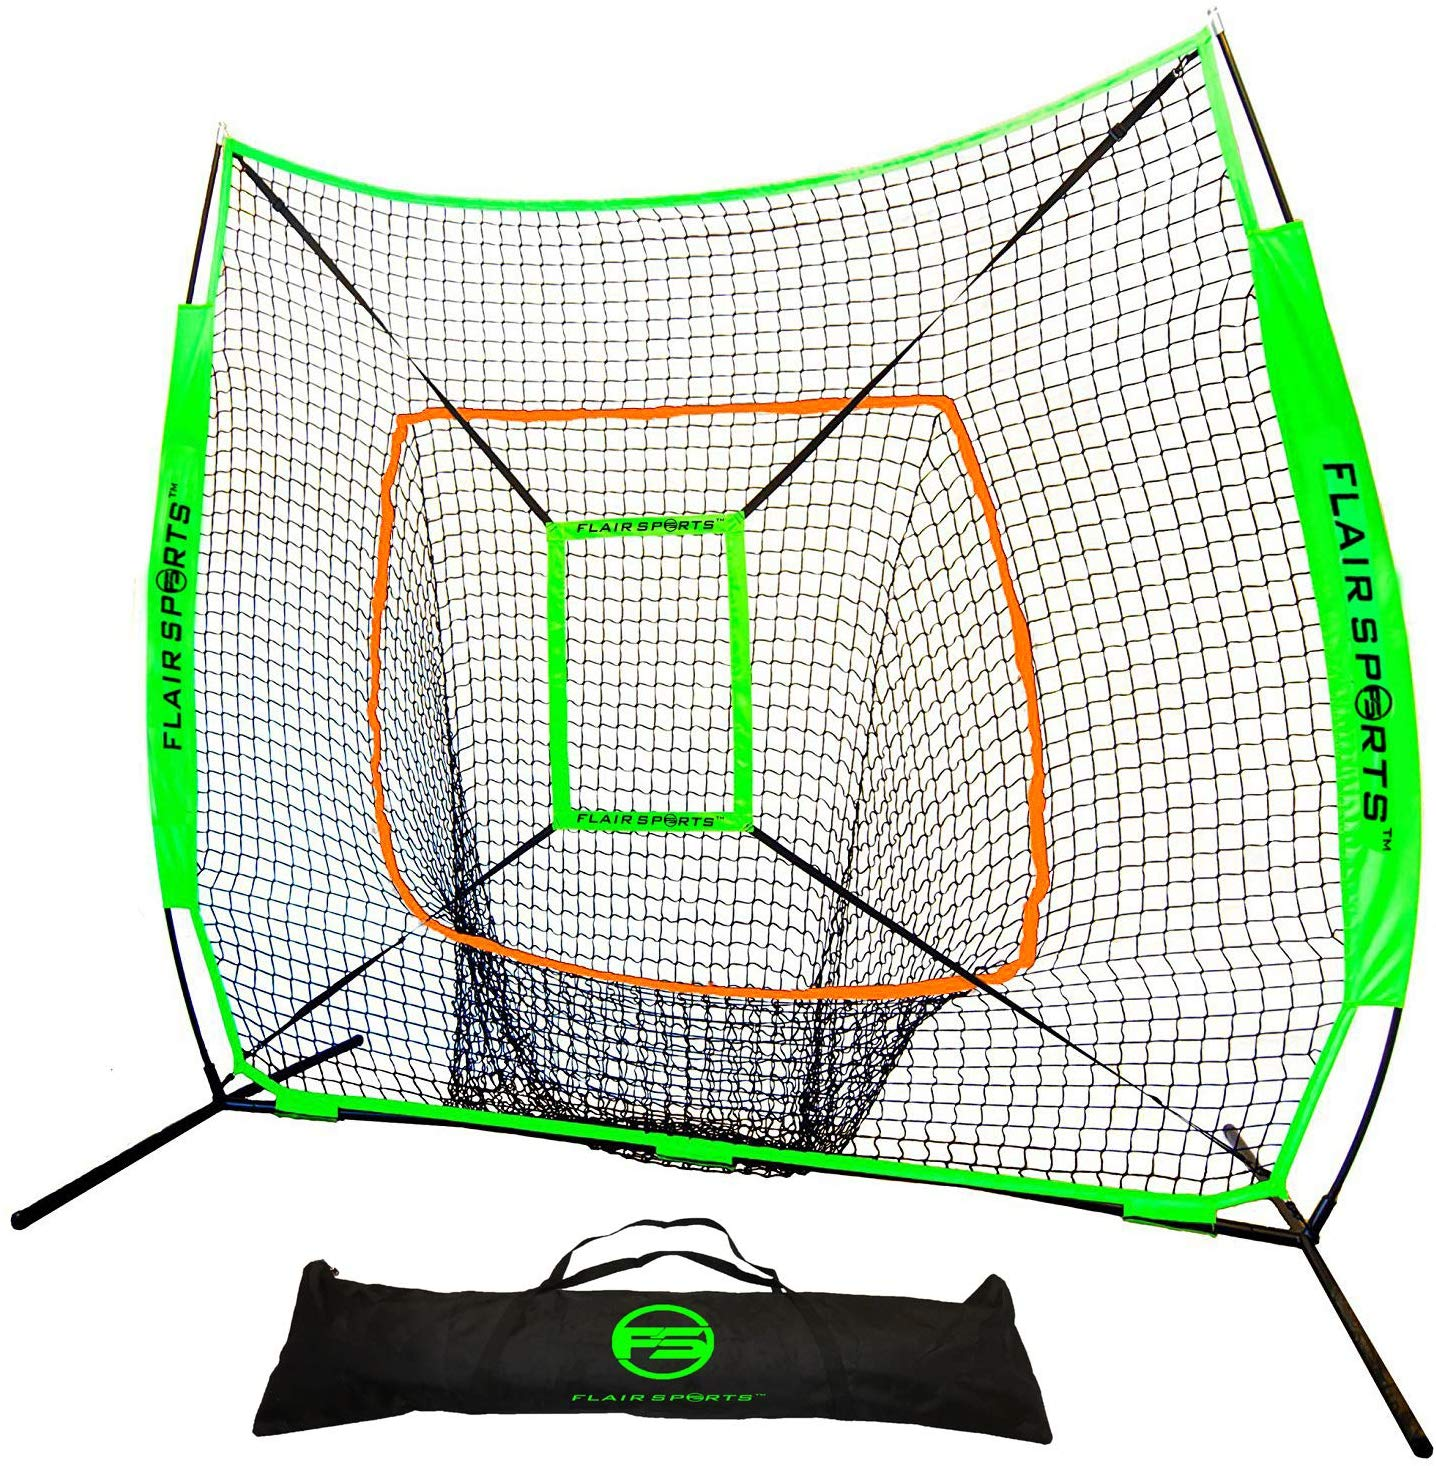 Baseball / Softball Net for Hitting & Pitching 7' x 7' - Neon Orange / Neon Green